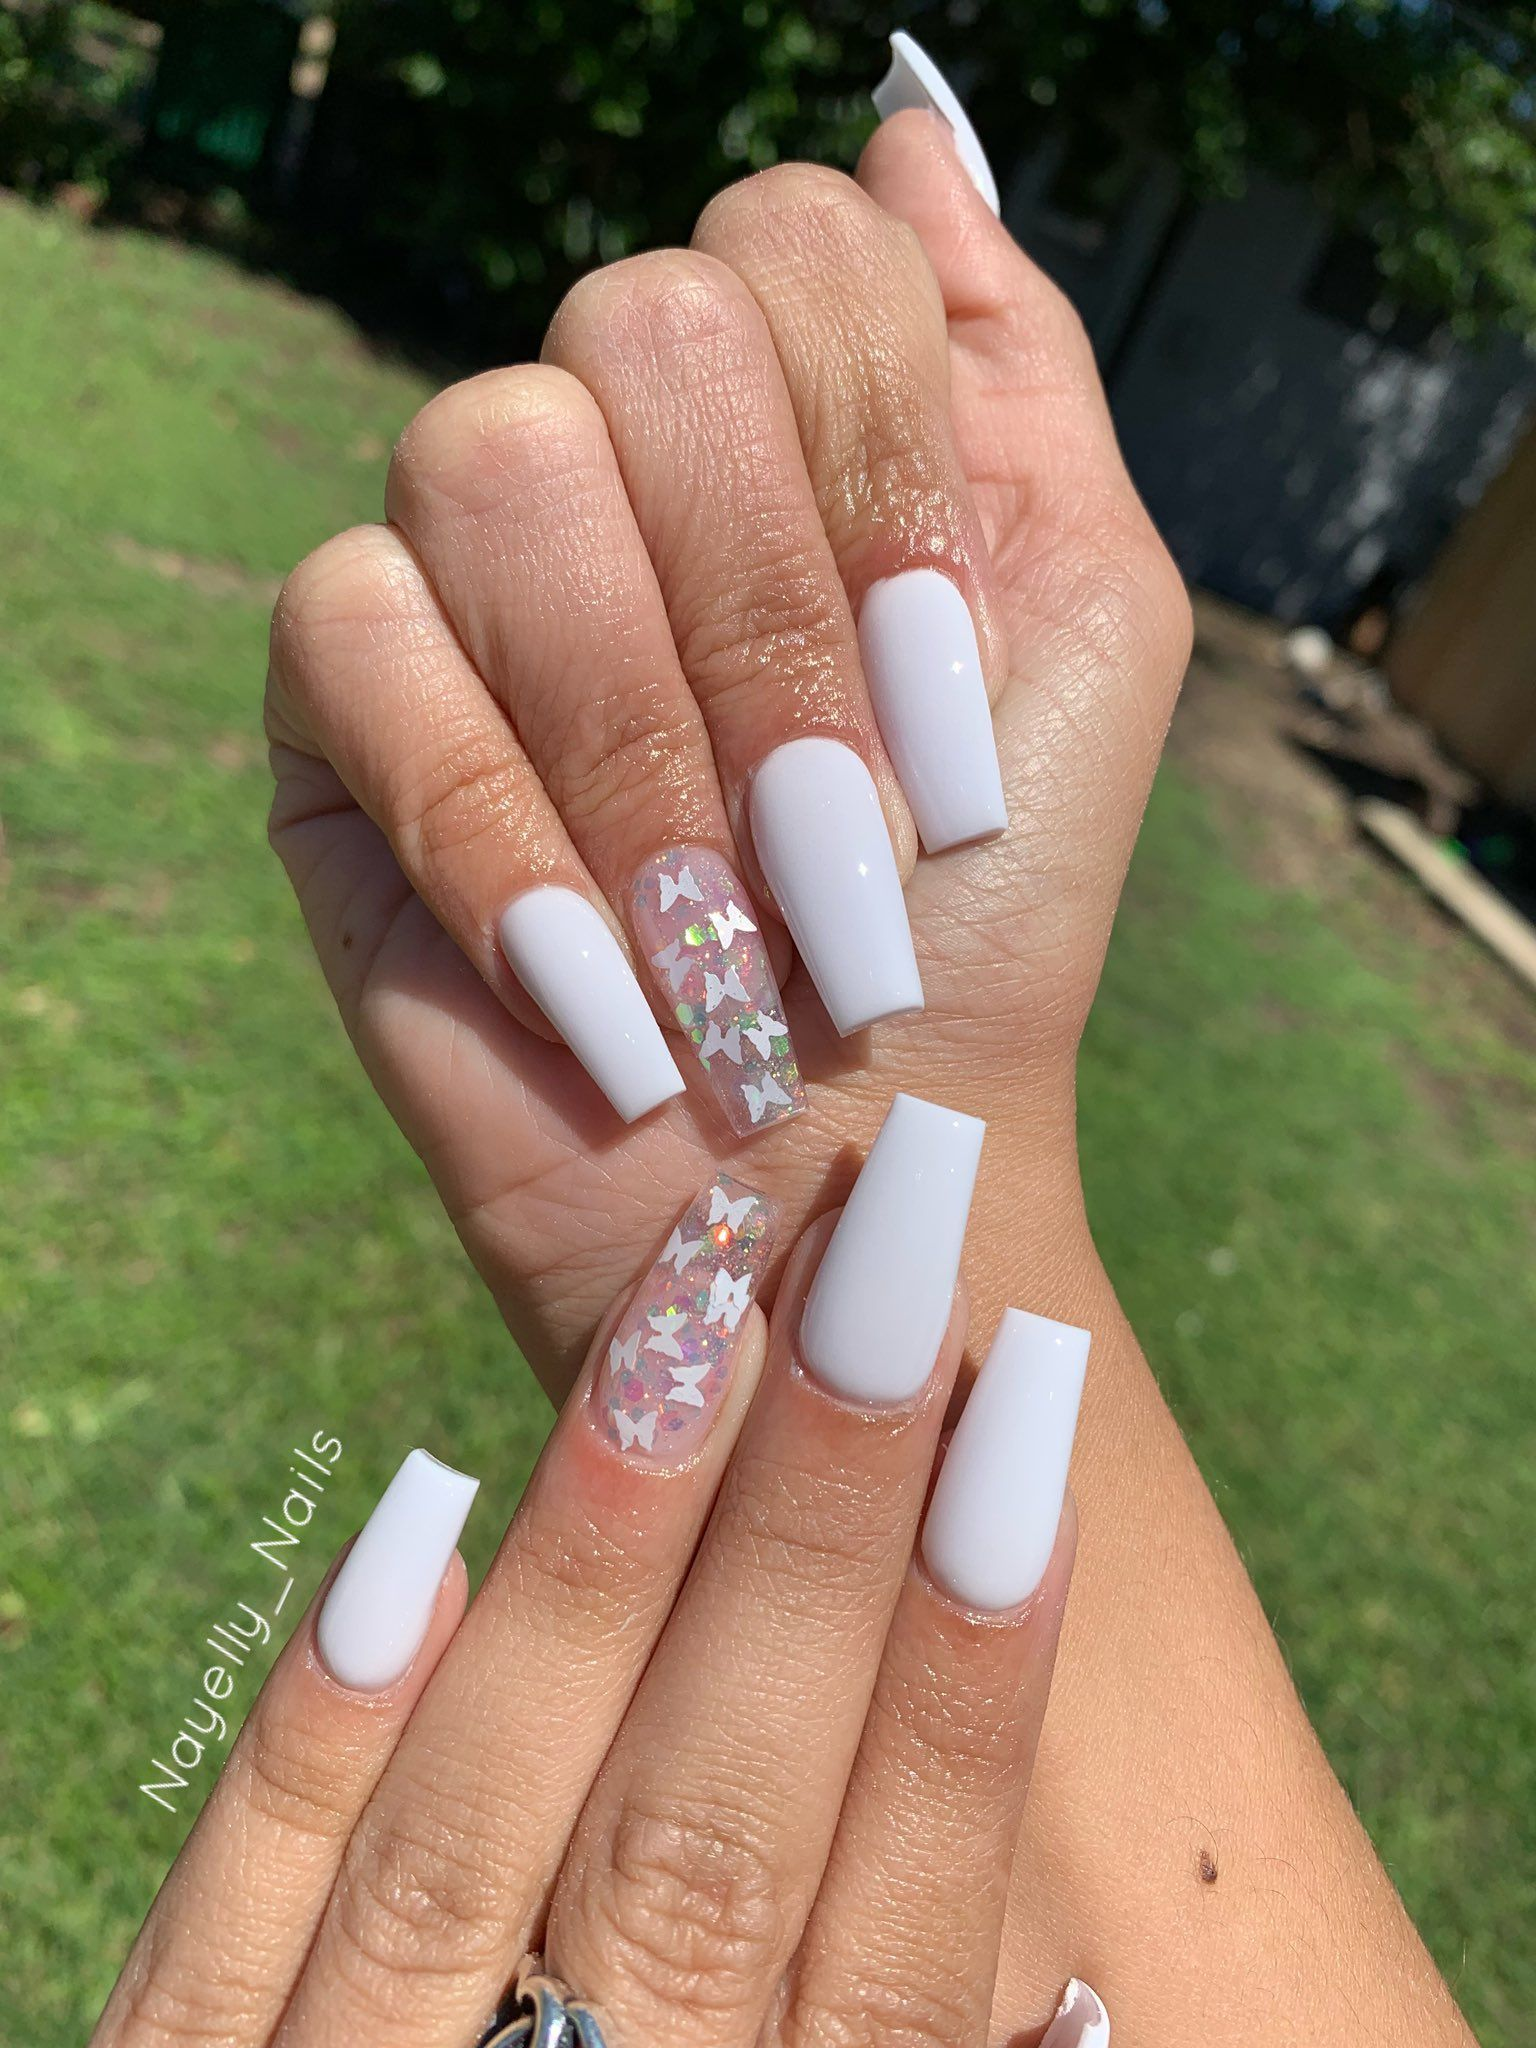 Nayelly_Nails on Twitter